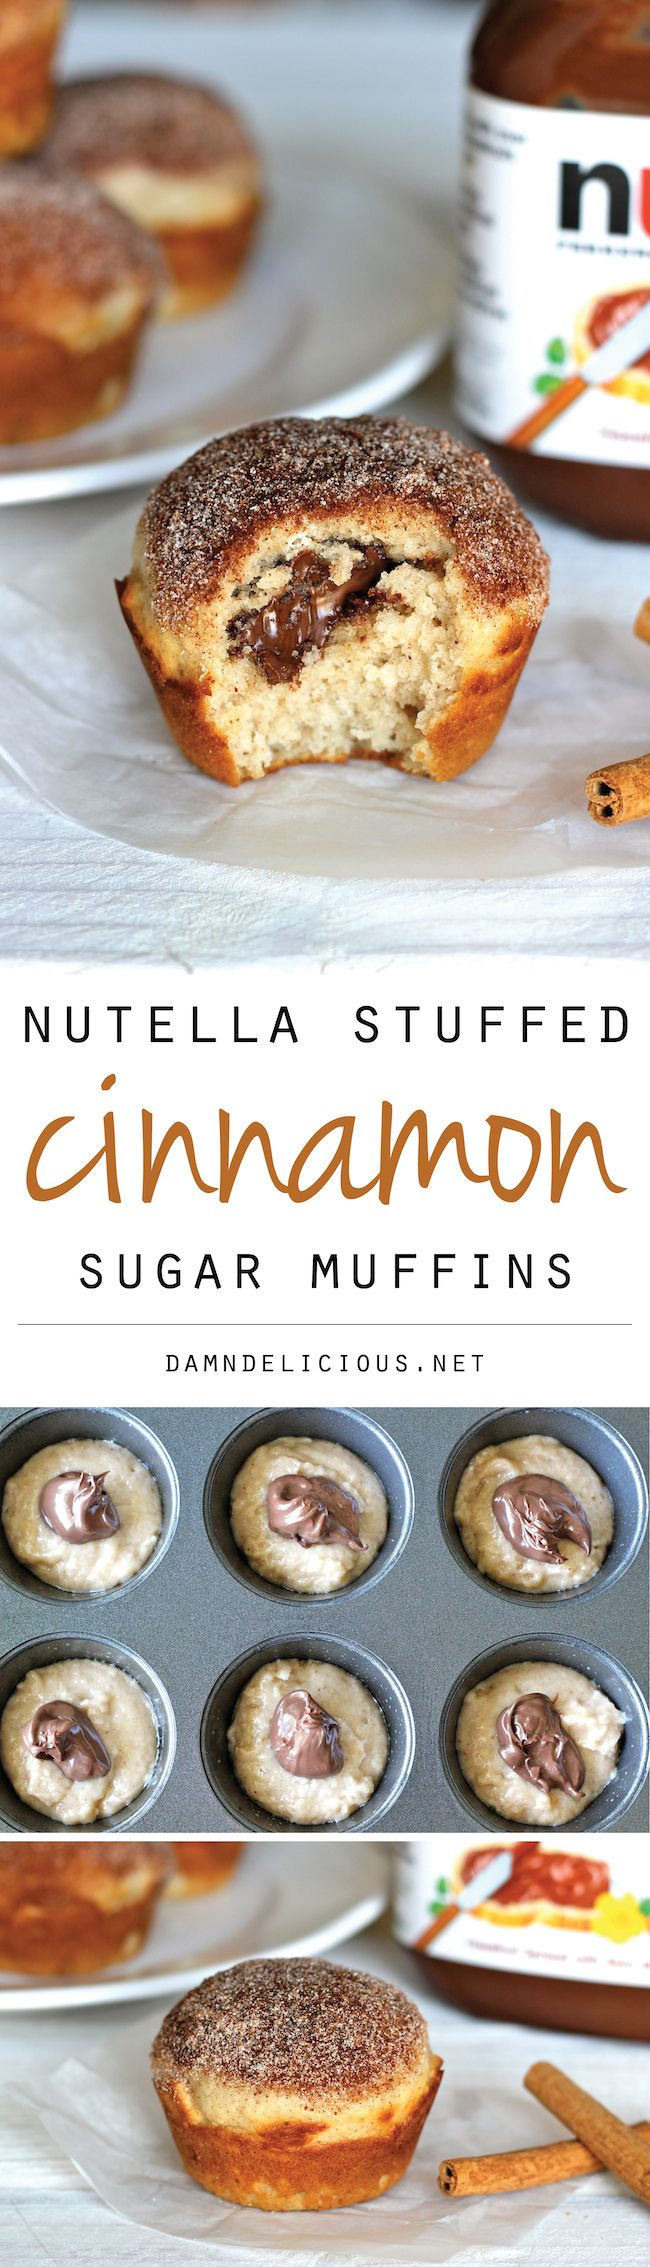 Nutella Stuffed Cinnamon Sugar Muffins - mmmmm